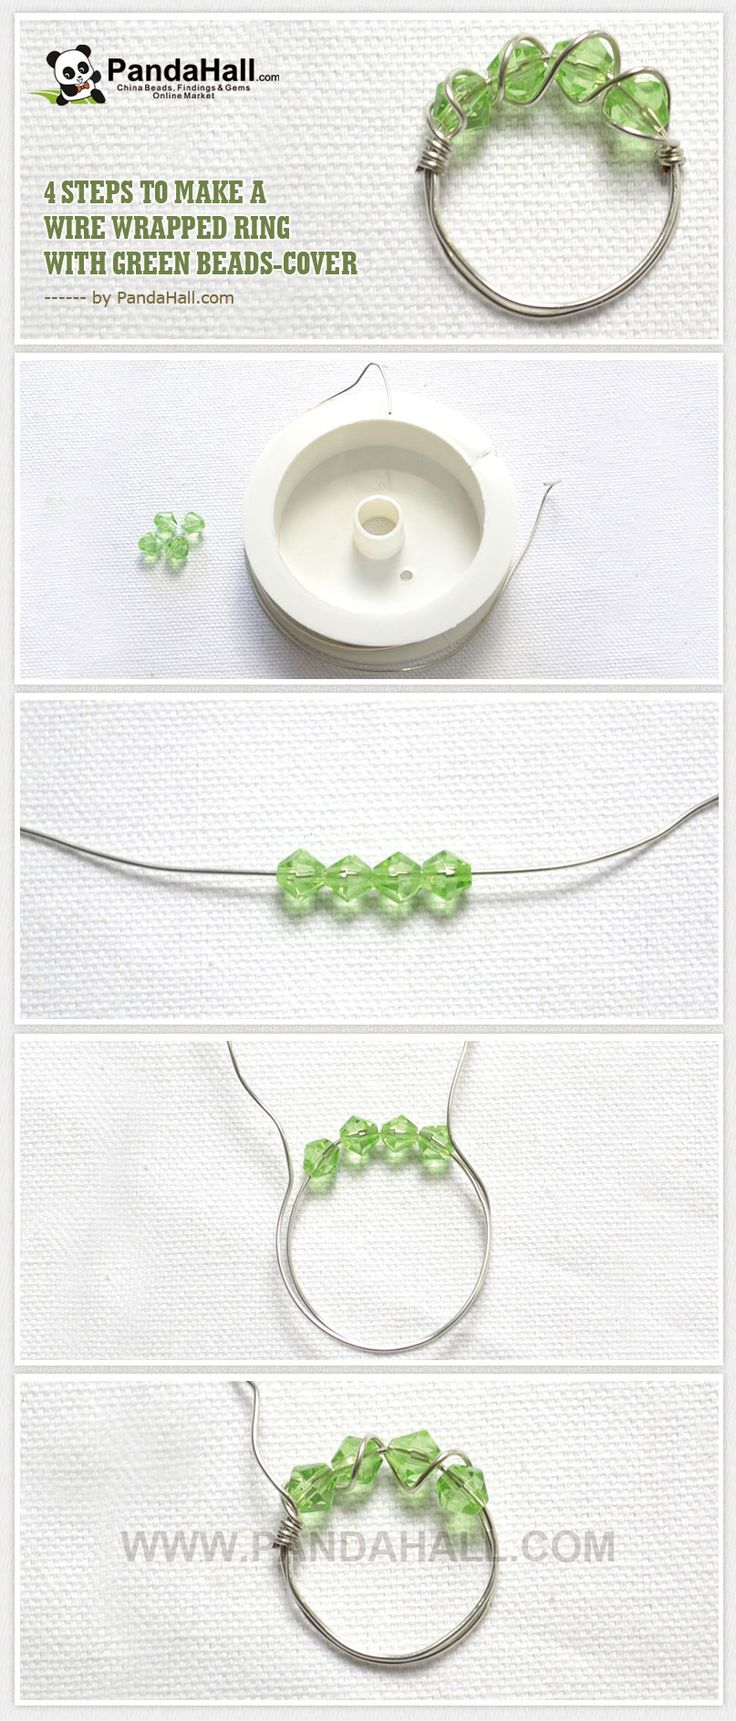 4 Steps to Make a Wire Wrapped Ring with Green Beads (tutorial with pictures) - pretty for a necklace